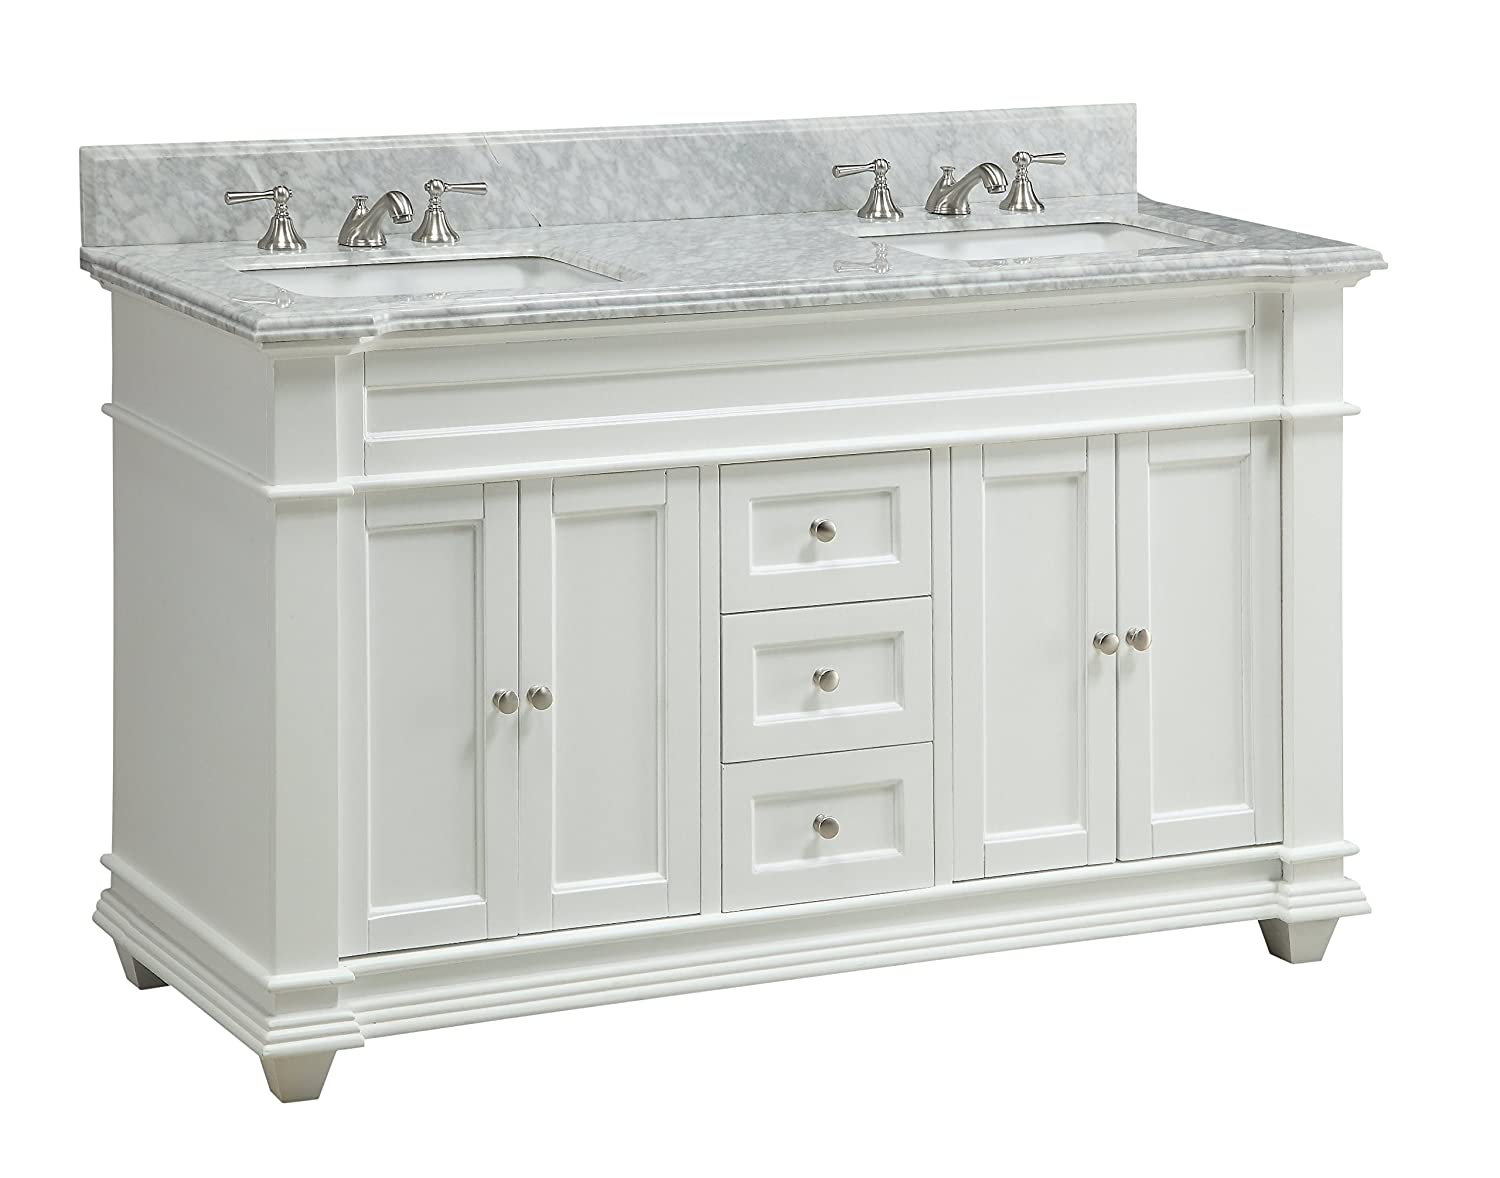 Amazon.com: 60 Inch Italian Carrara marble top Kendall Bathroom sink ...